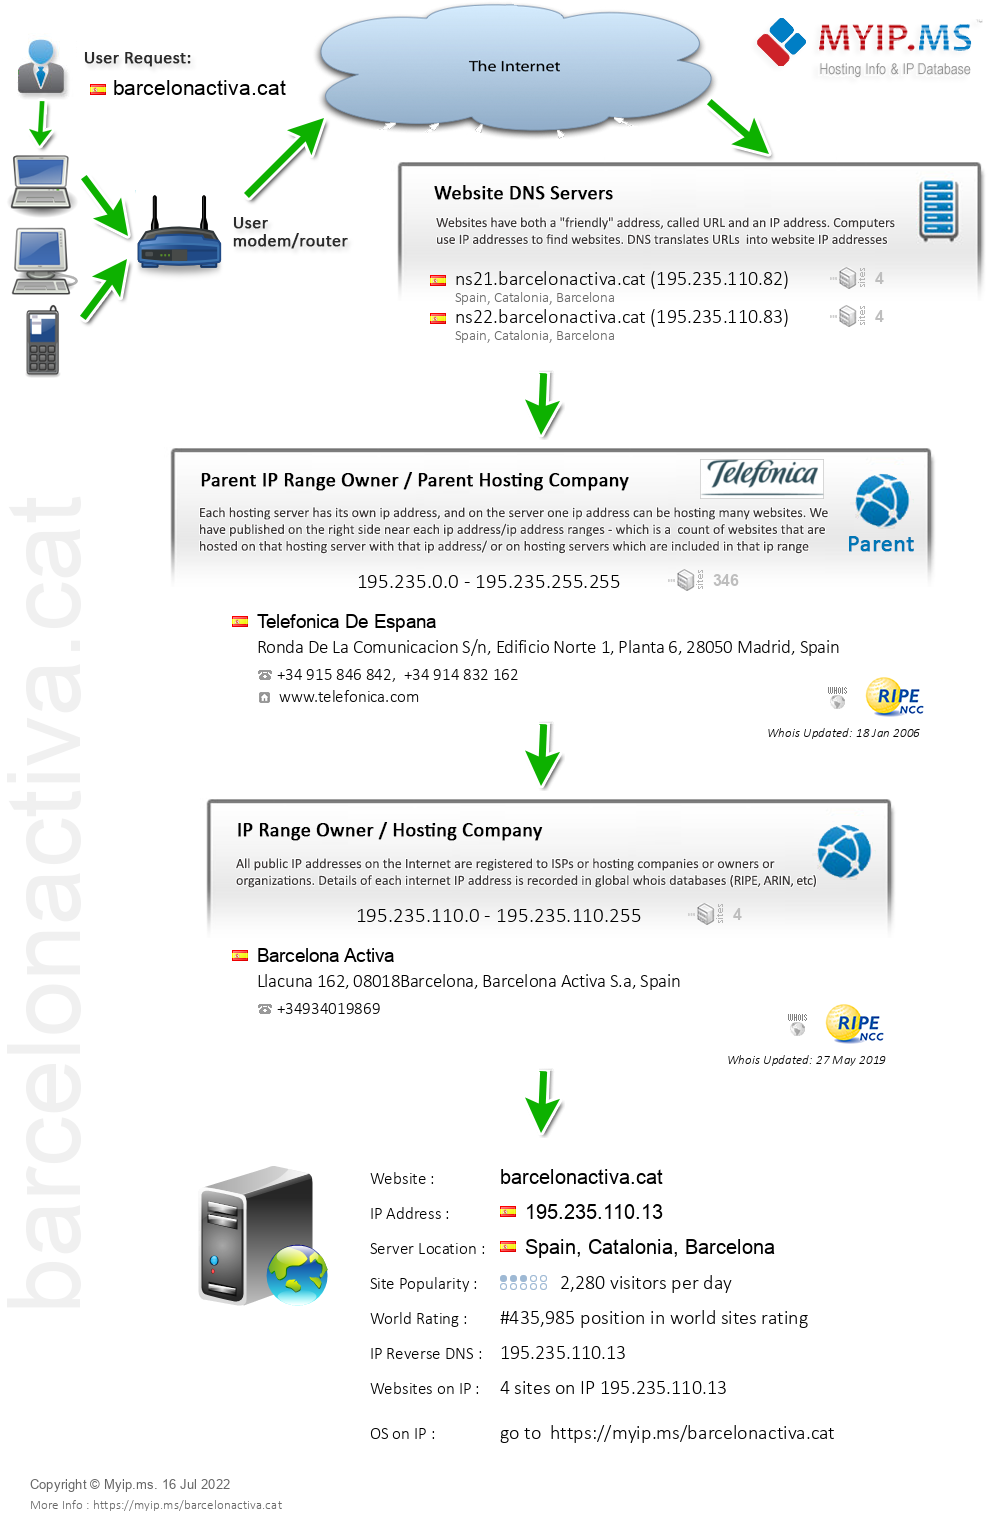 Barcelonactiva.cat - Website Hosting Visual IP Diagram